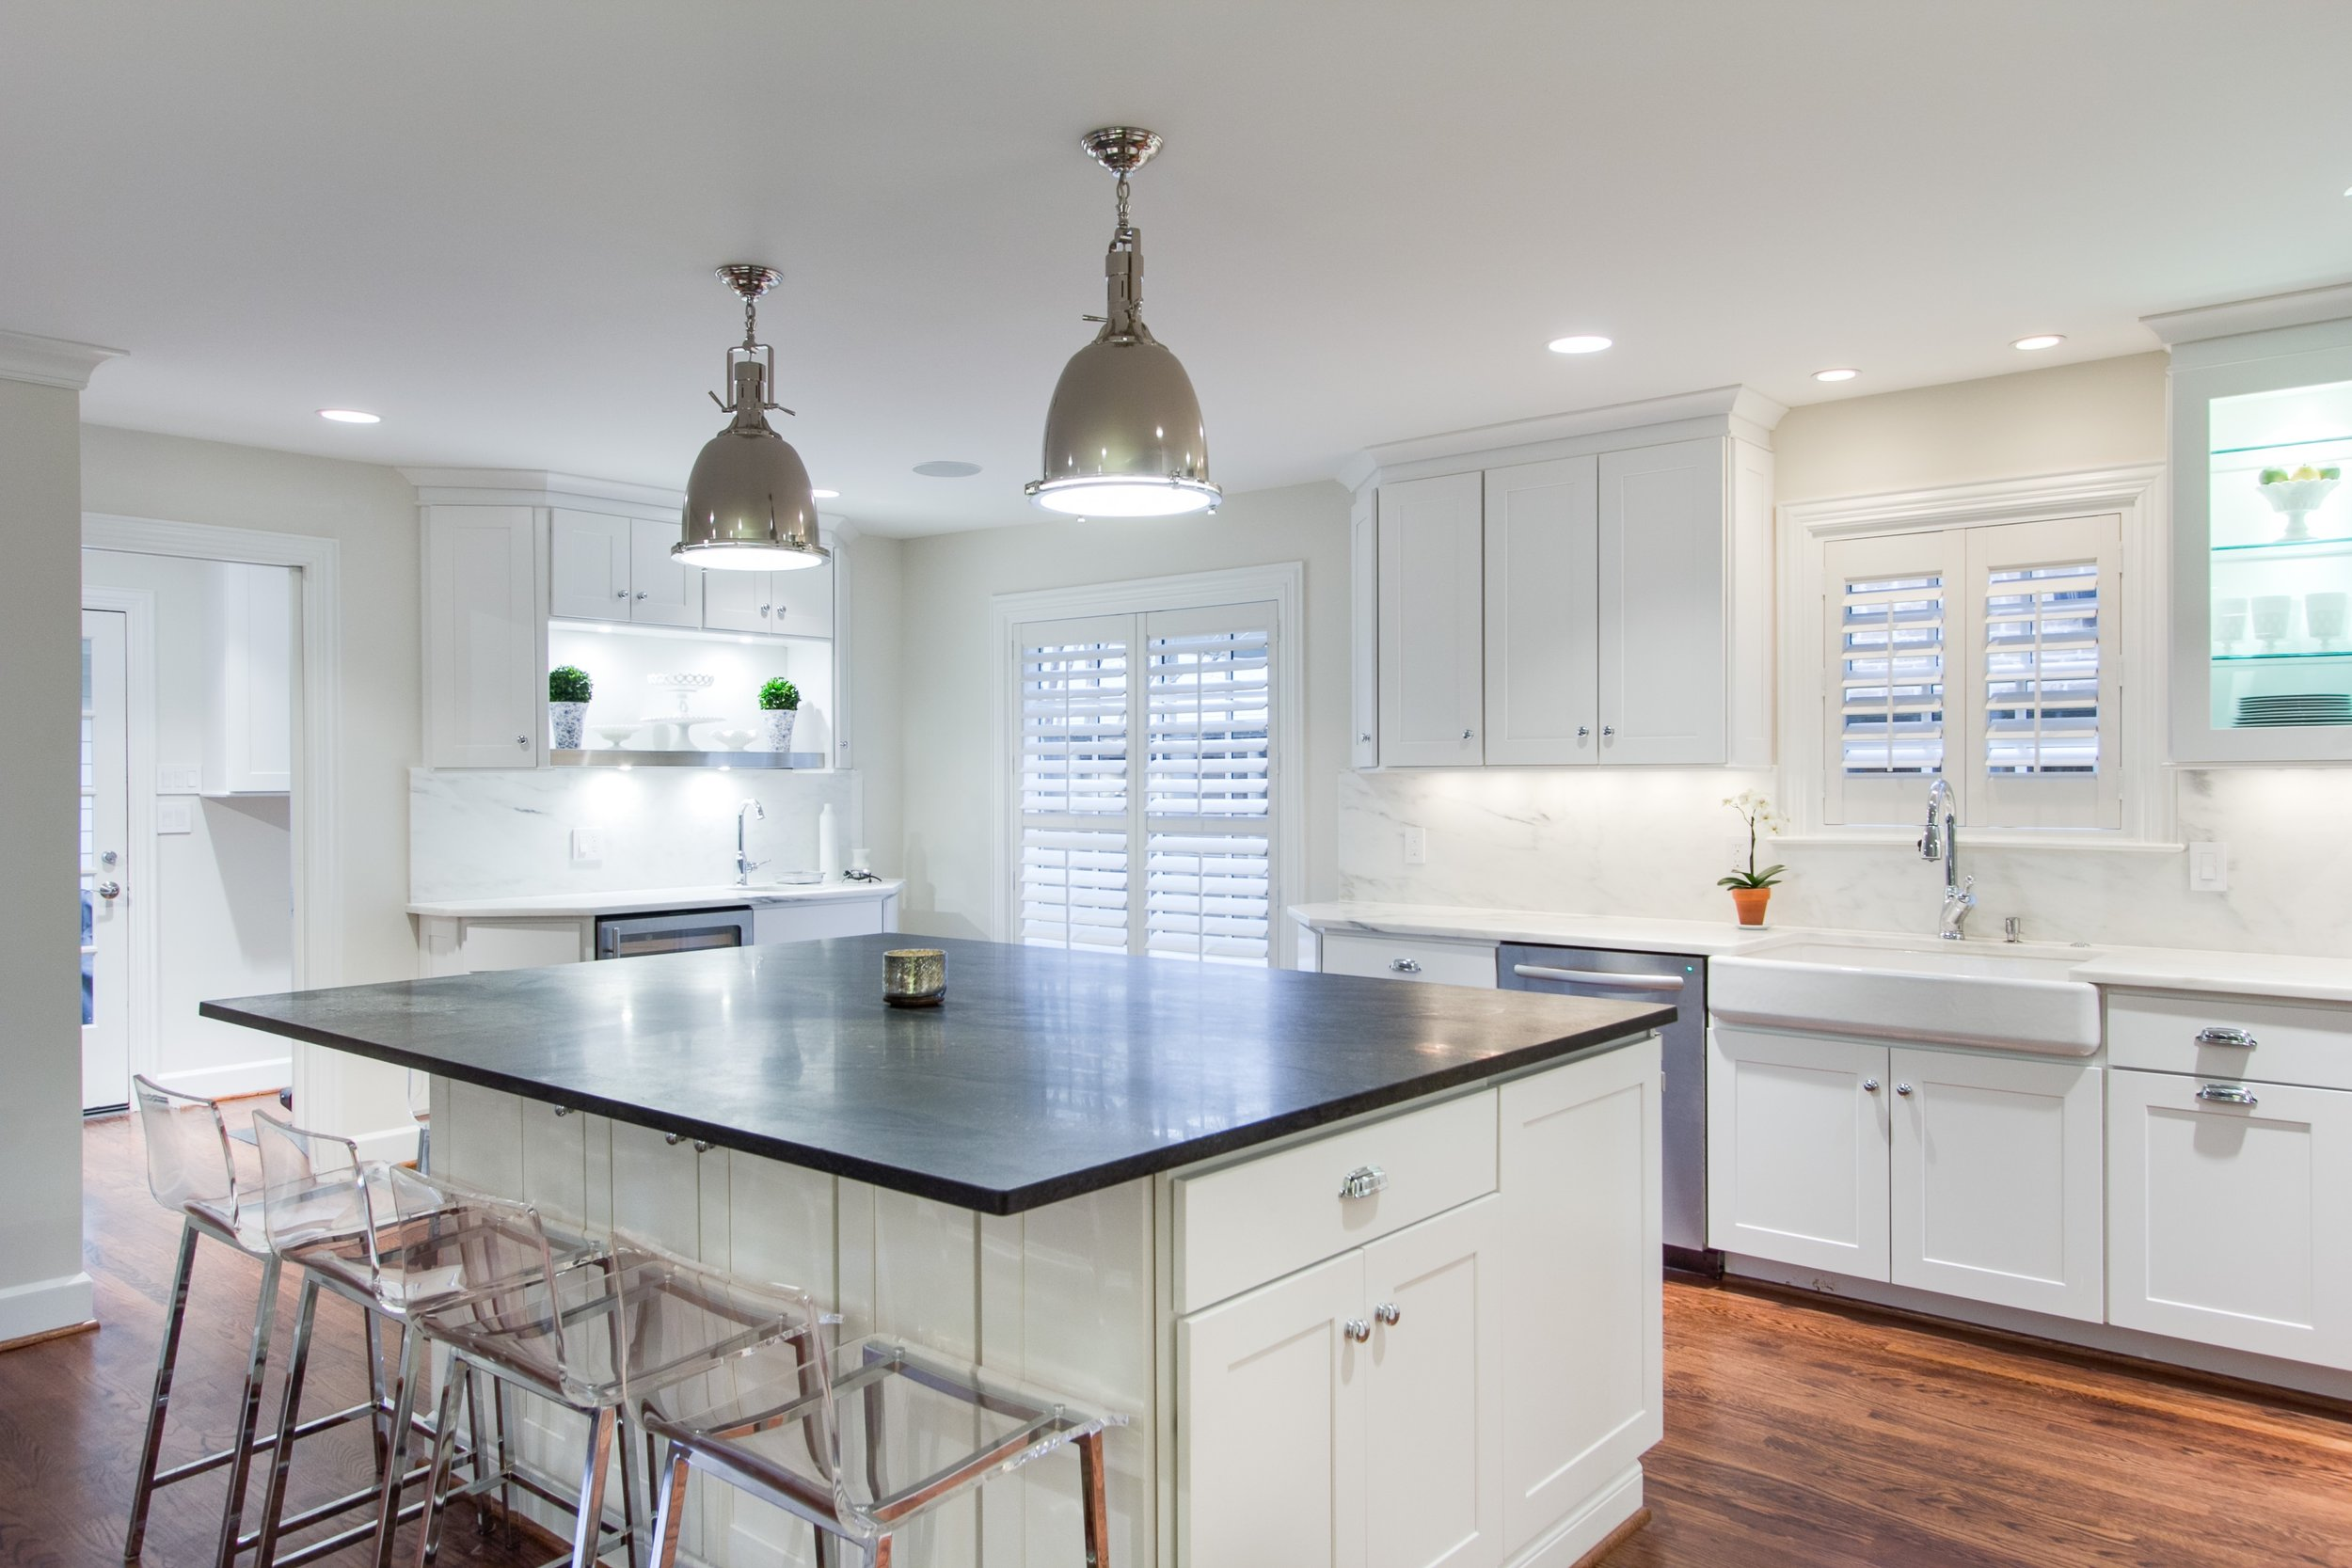 Manchester Kitchen with Vermont Marble and Soapstone Countertops.jpg